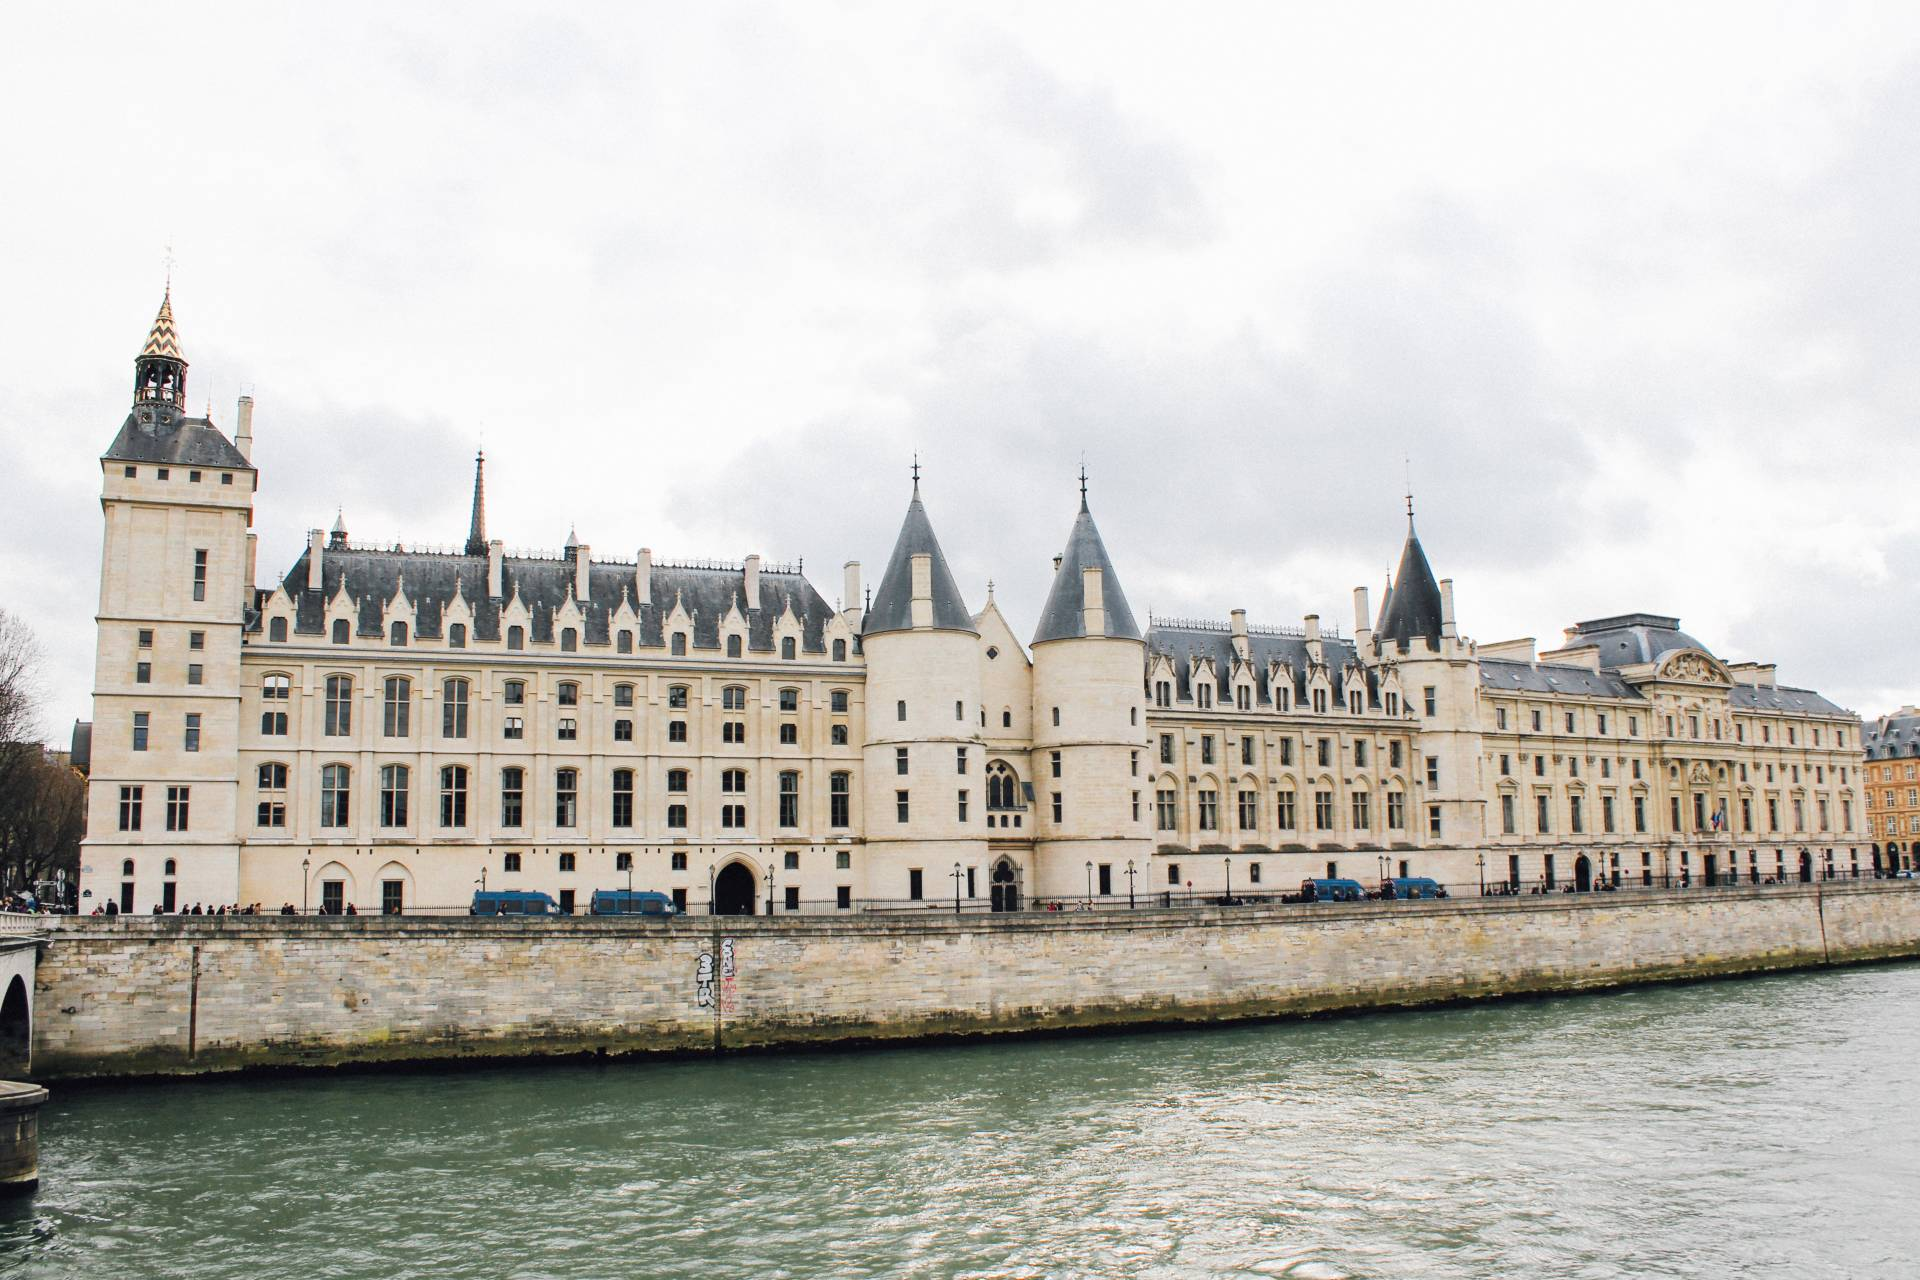 Buildings along the River Seine, Paris, France